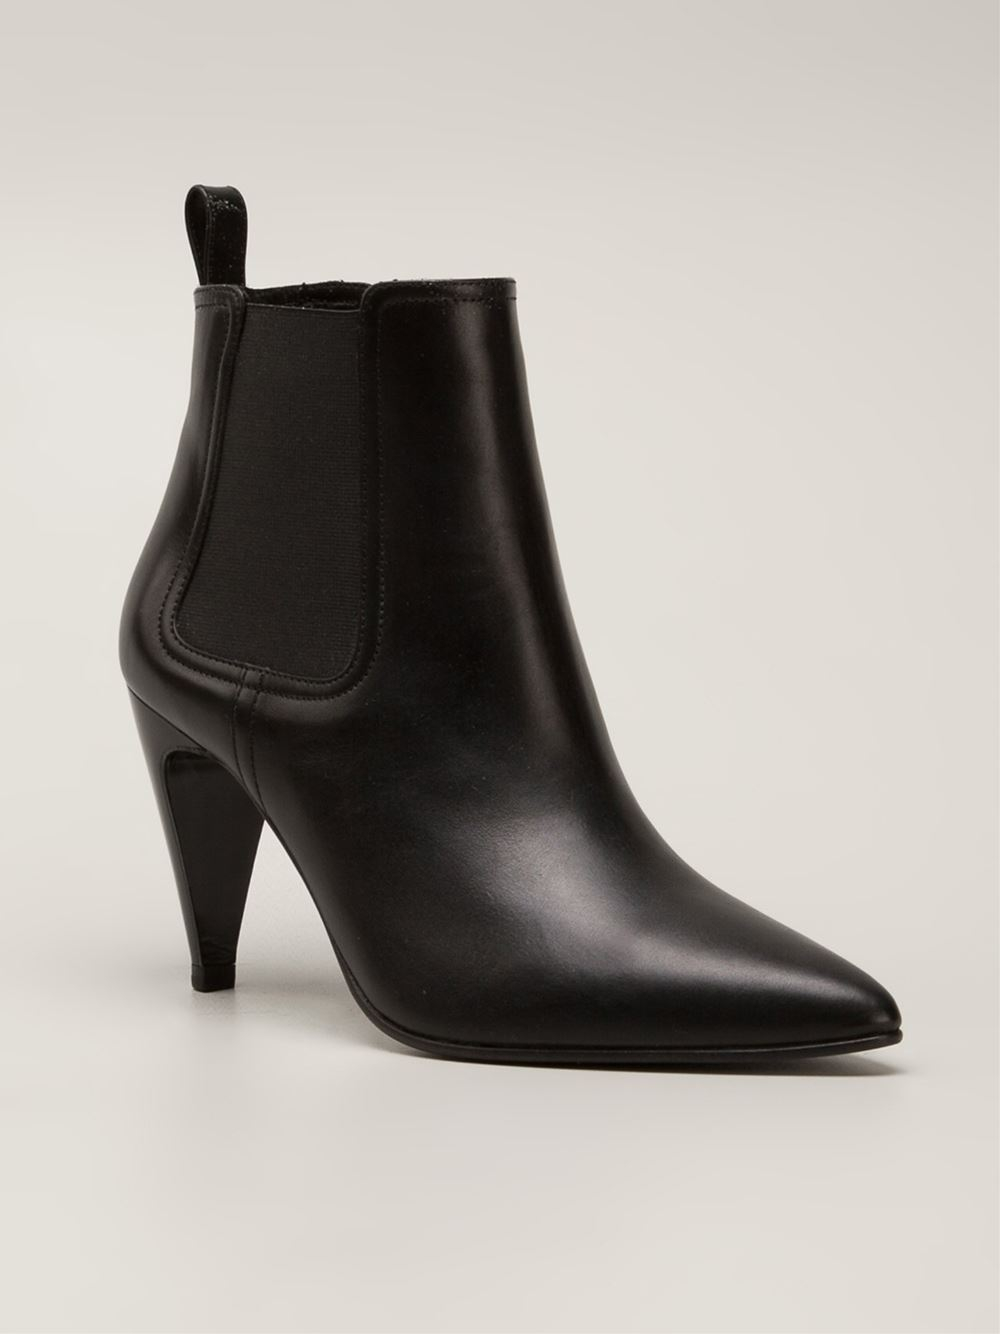 Robert Clergerie Kute Boots in Black